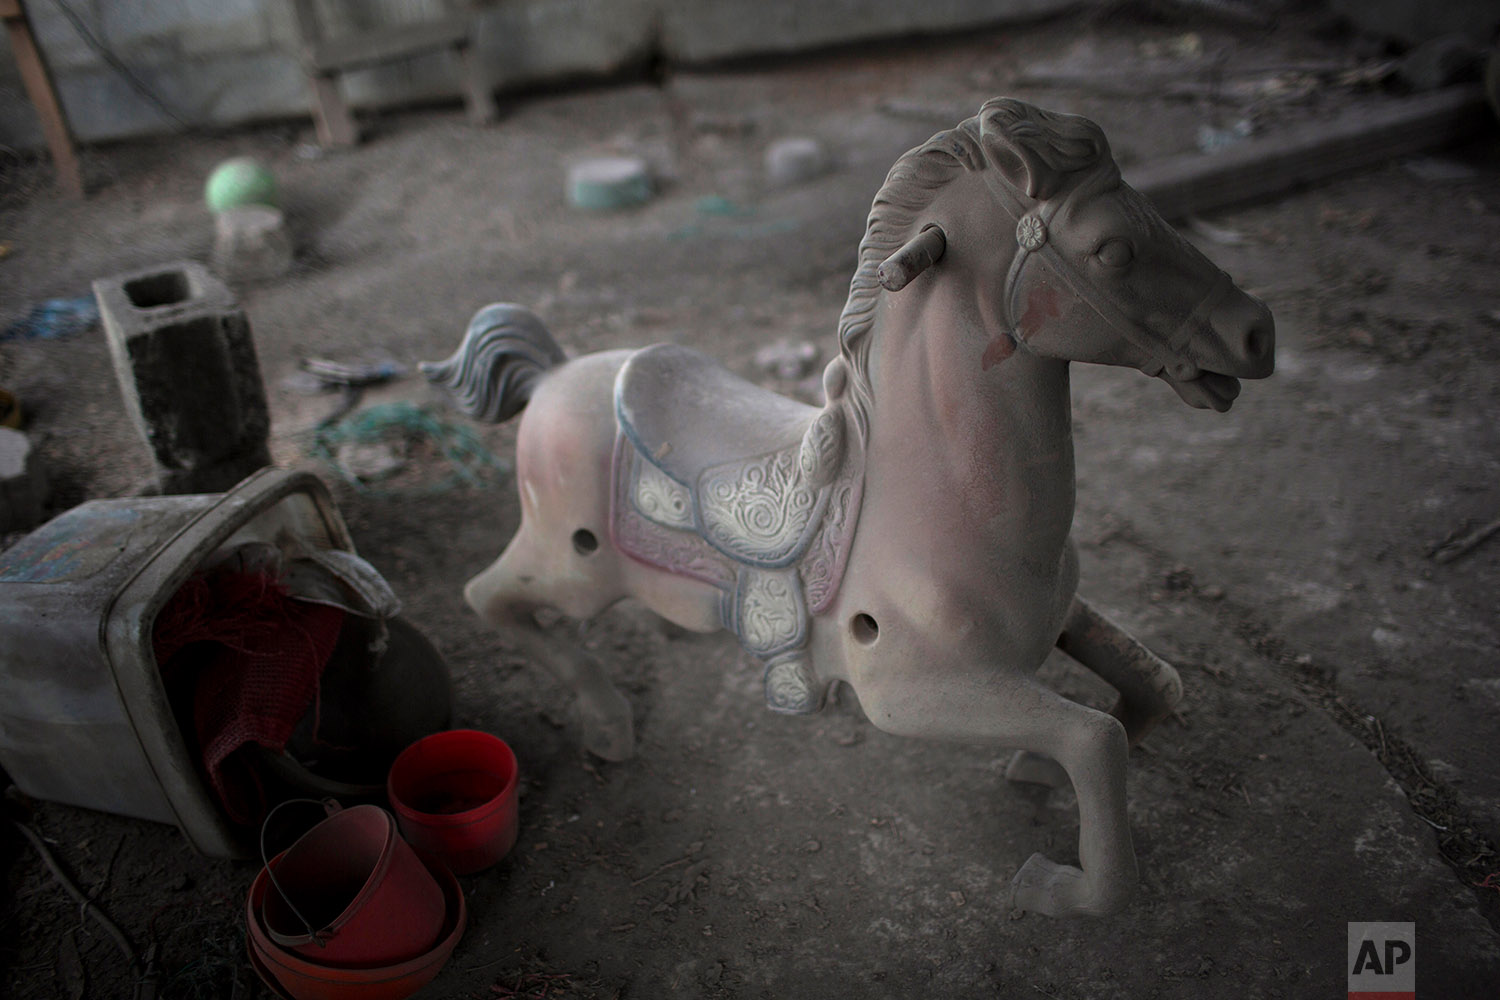 This June 8, 2018 photo shows a spring pony dusted with volcanic ash spewed by the Volcan de Fuego or Volcano of Fire, on the balcony of a home in San Miguel Los Lotes, Guatemala. (AP Photo/Rodrigo Abd)